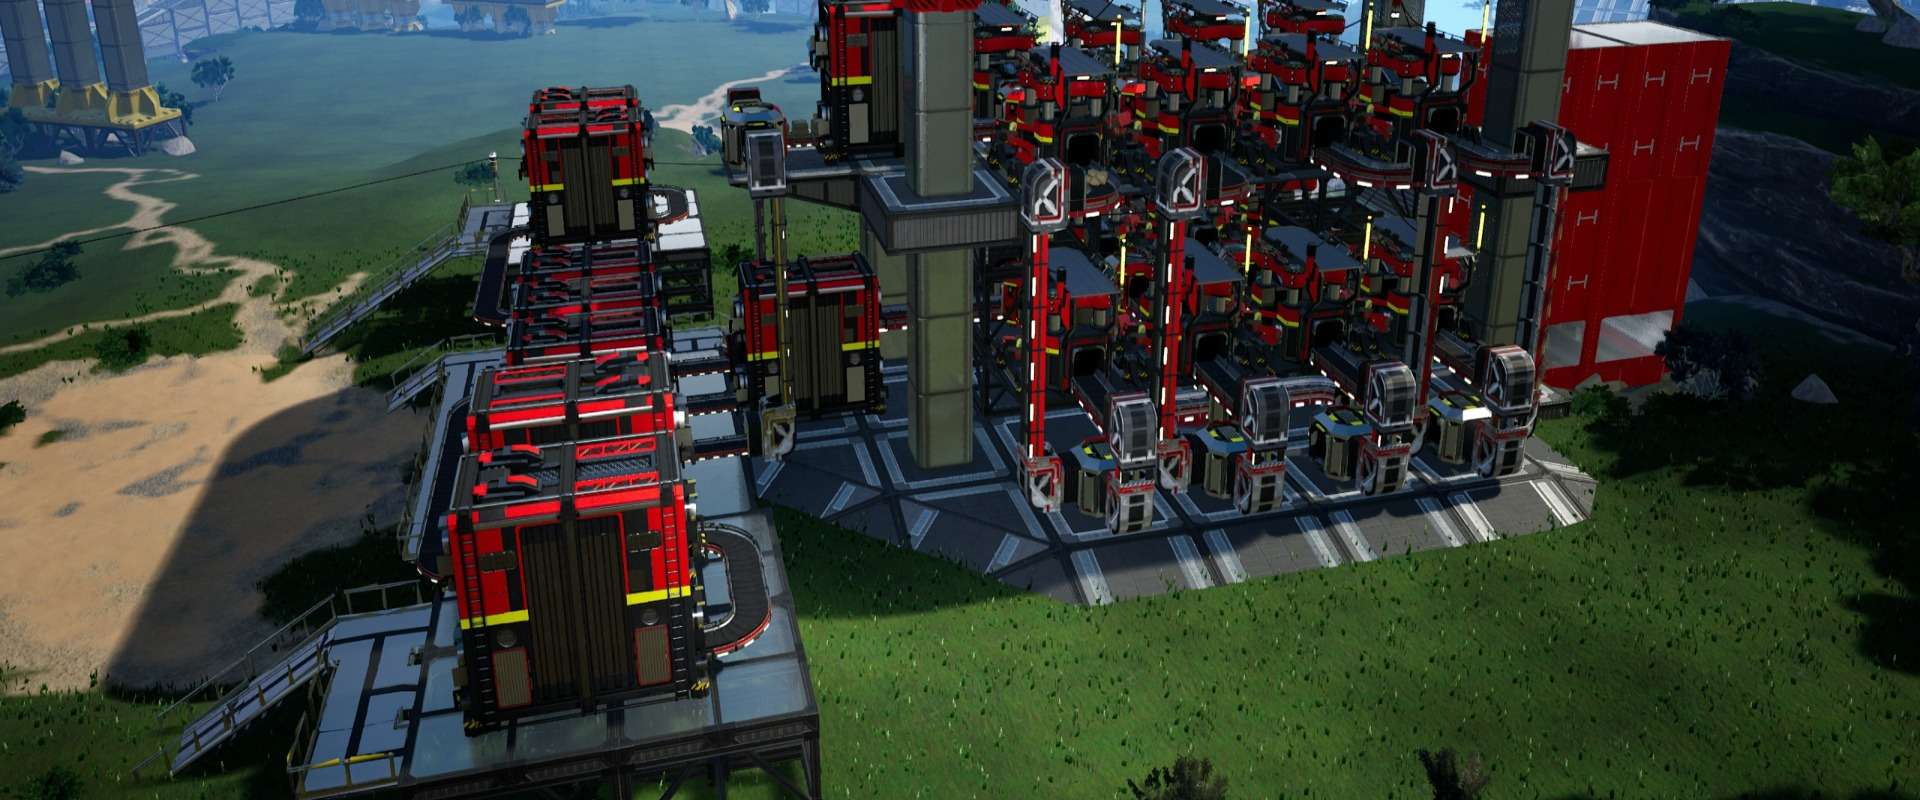 starting concrete factory